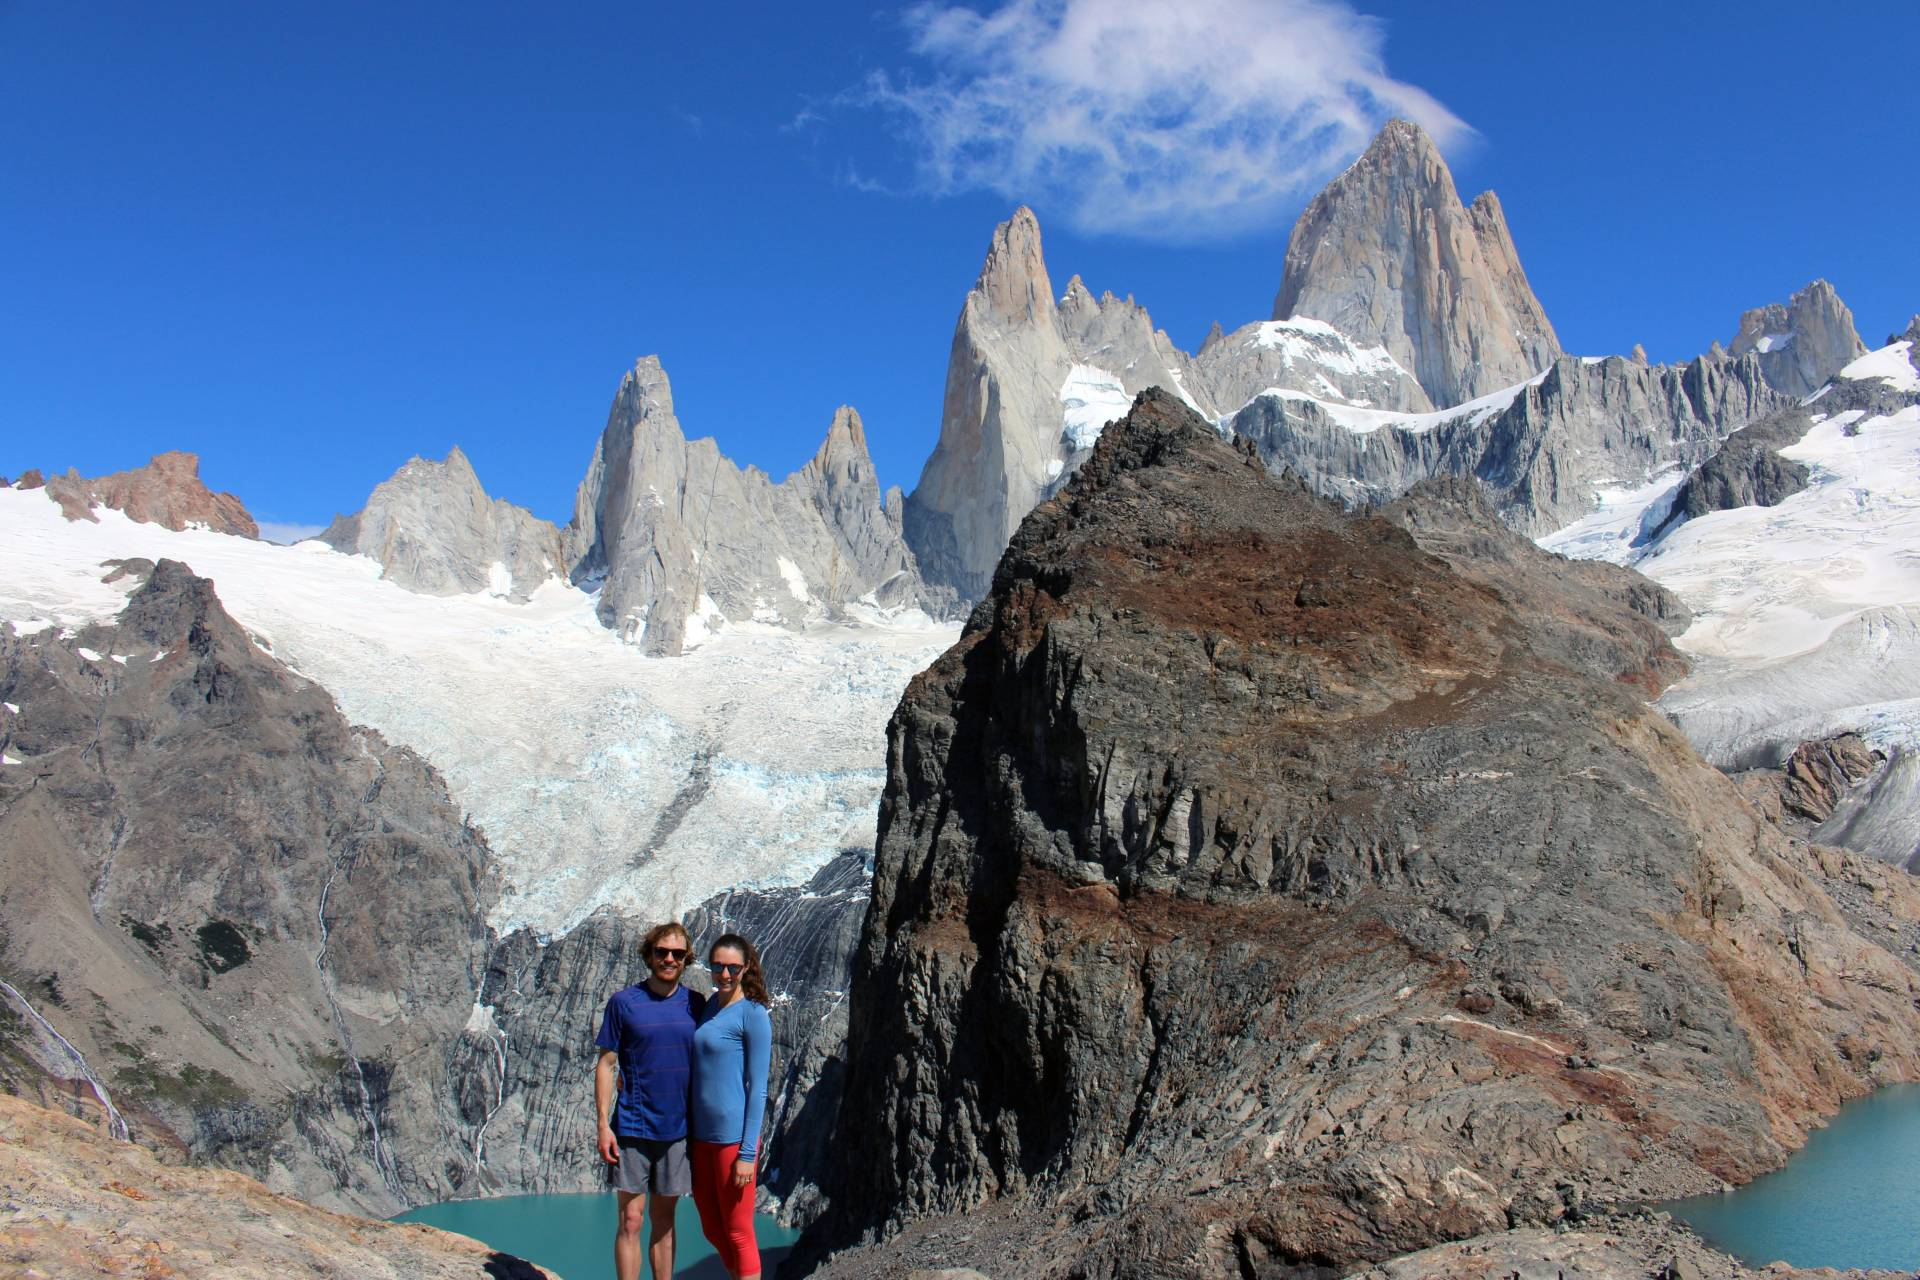 The top of Mt. Fitz Roy in Argentina, February 2016